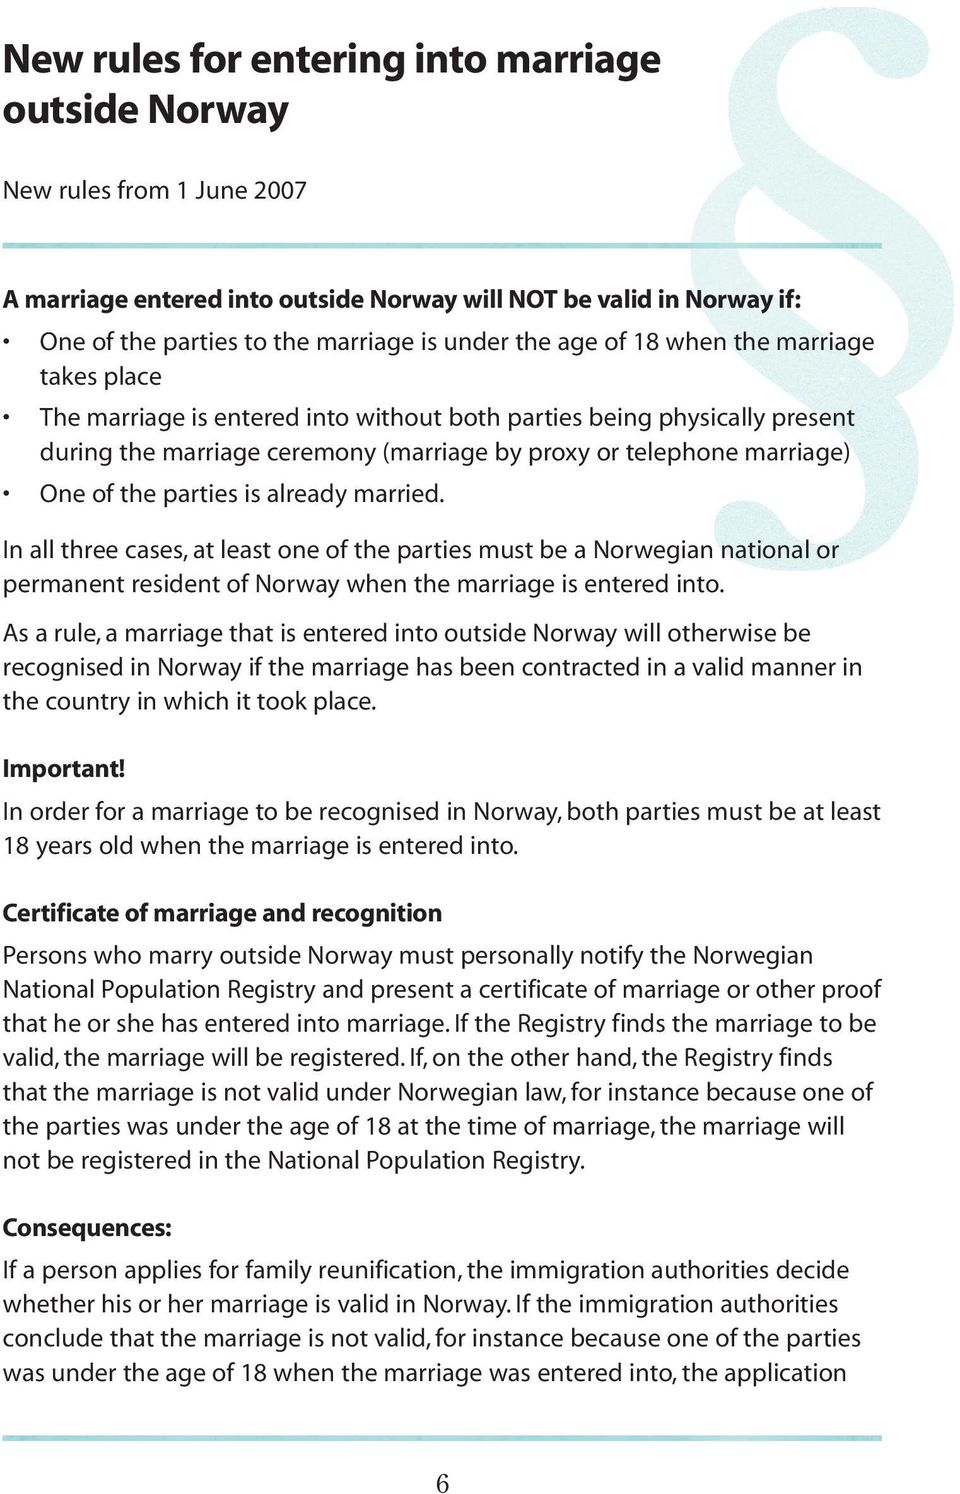 parties is already married. In all three cases, at least one of the parties must be a Norwegian national or permanent resident of Norway when the marriage is entered into.